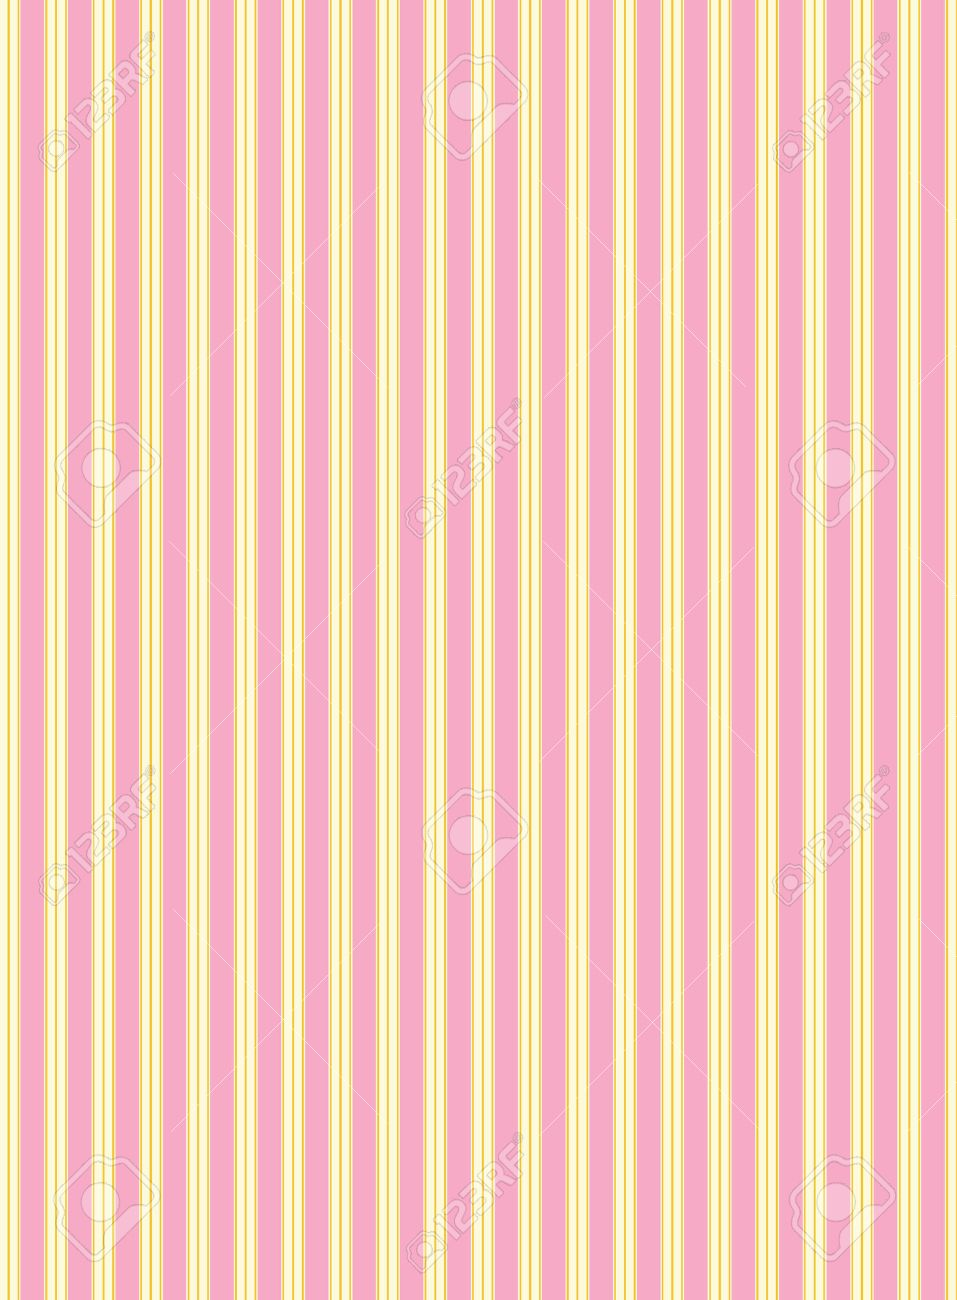 swatch striped fabric wallpaper in pink, gold and ecru that matches Valentine borders. - 6352554